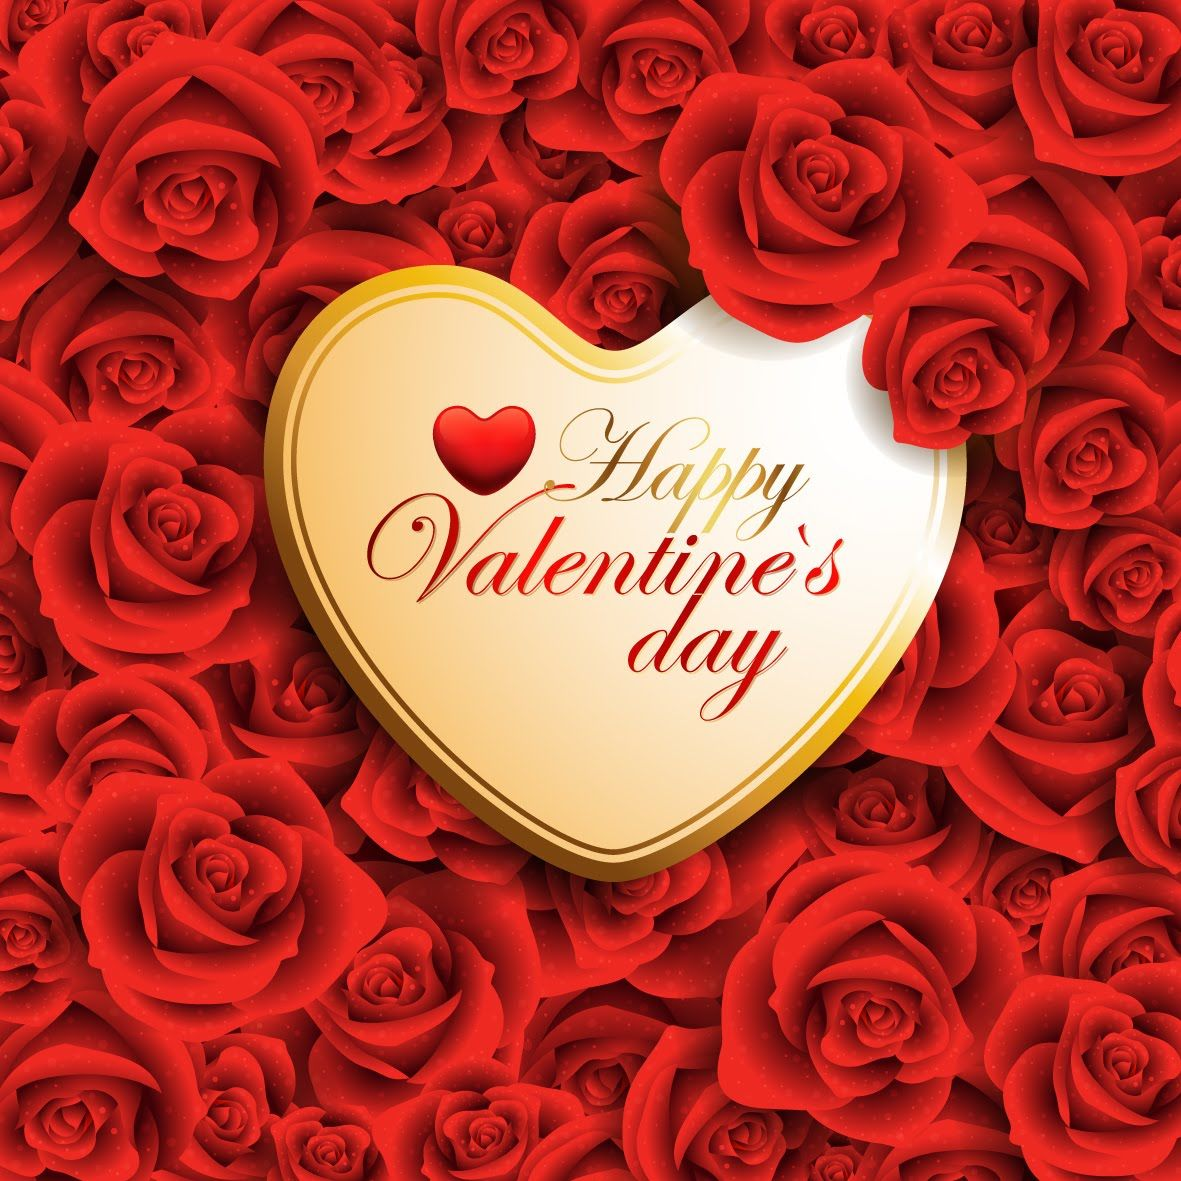 Happy Valentines Day Pictures, Photos, And Images For